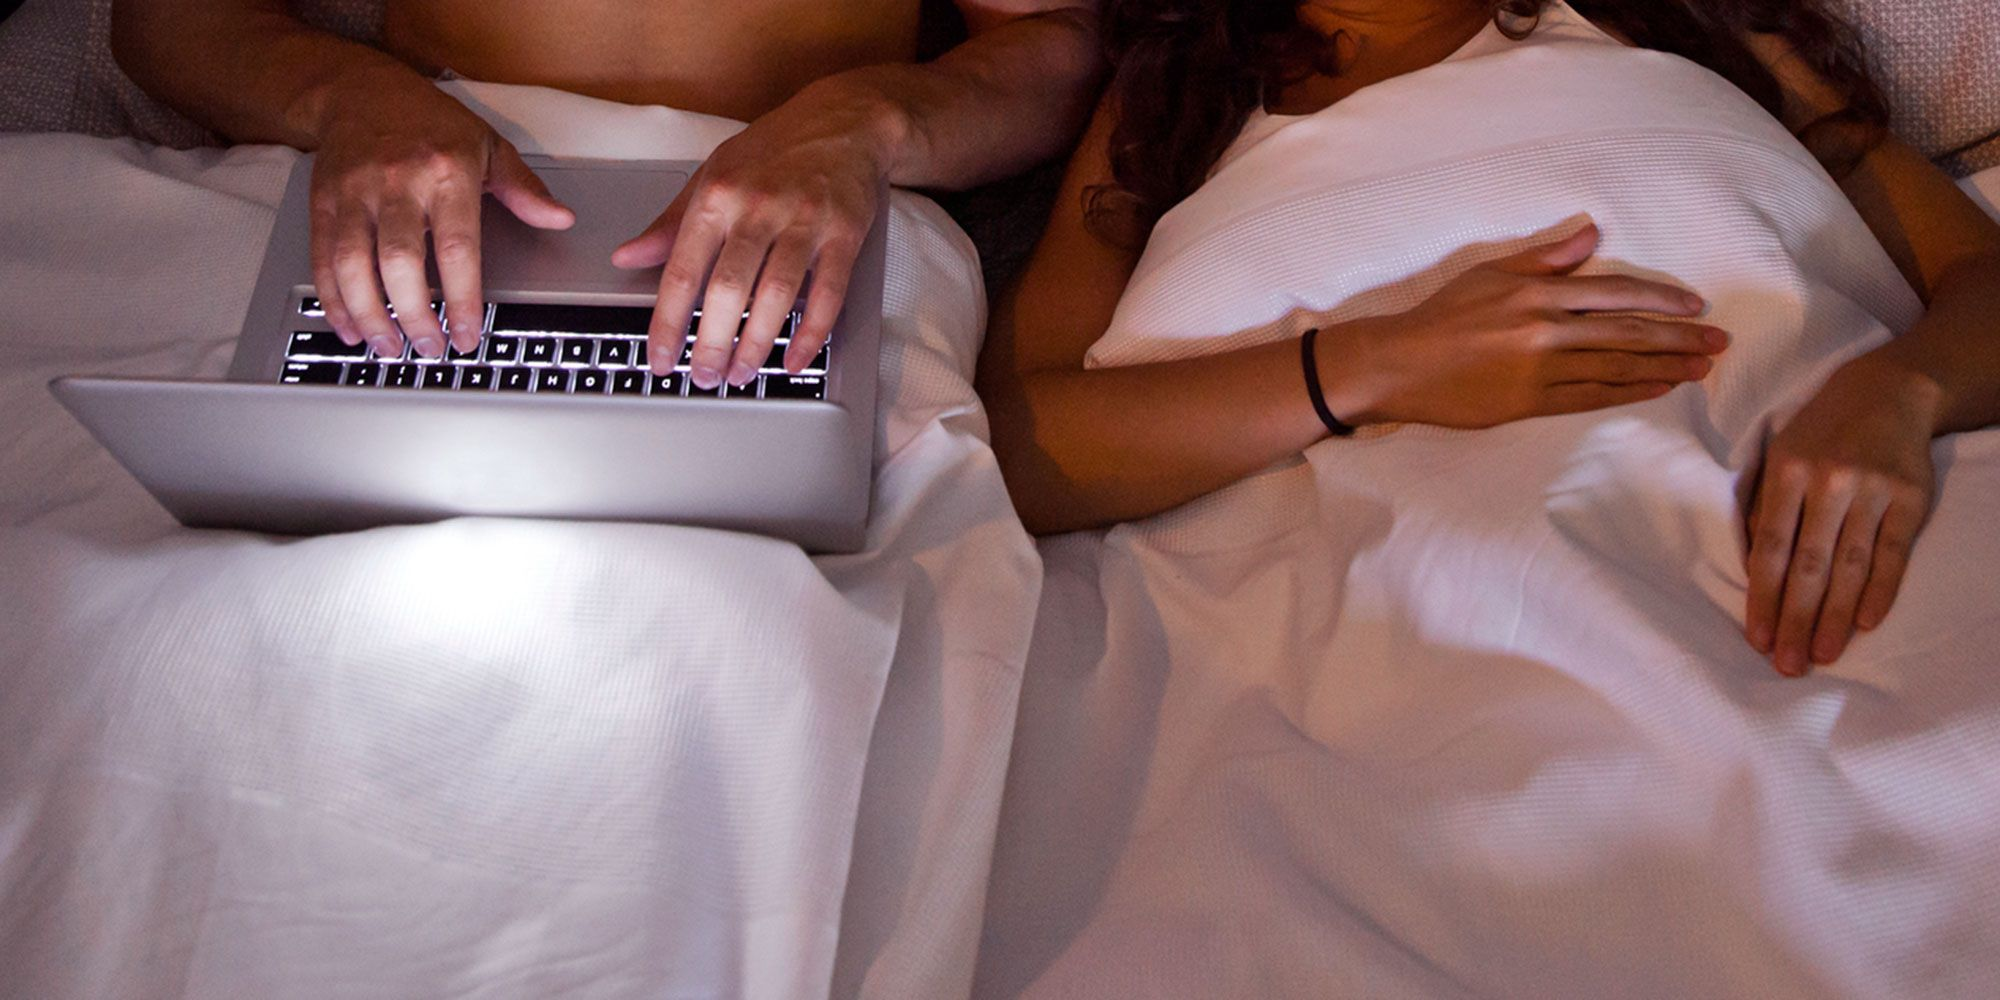 Why do couples watch porn together